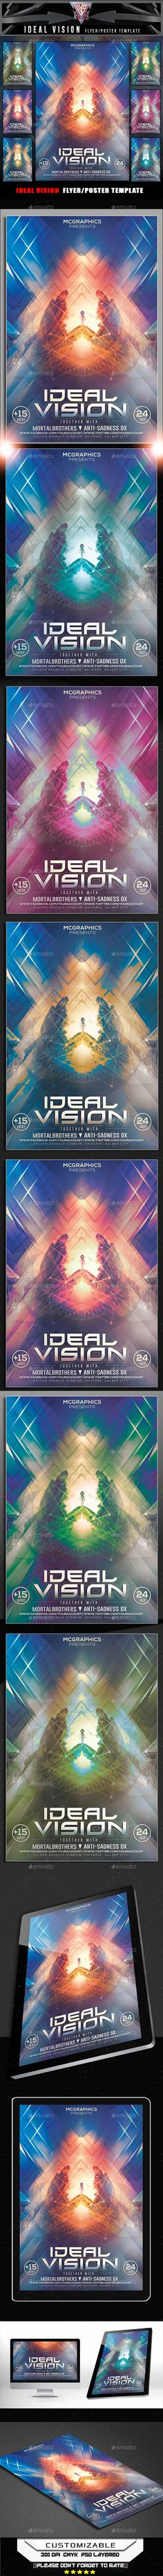 Poster design visio - Ideal Vision Flyer Template